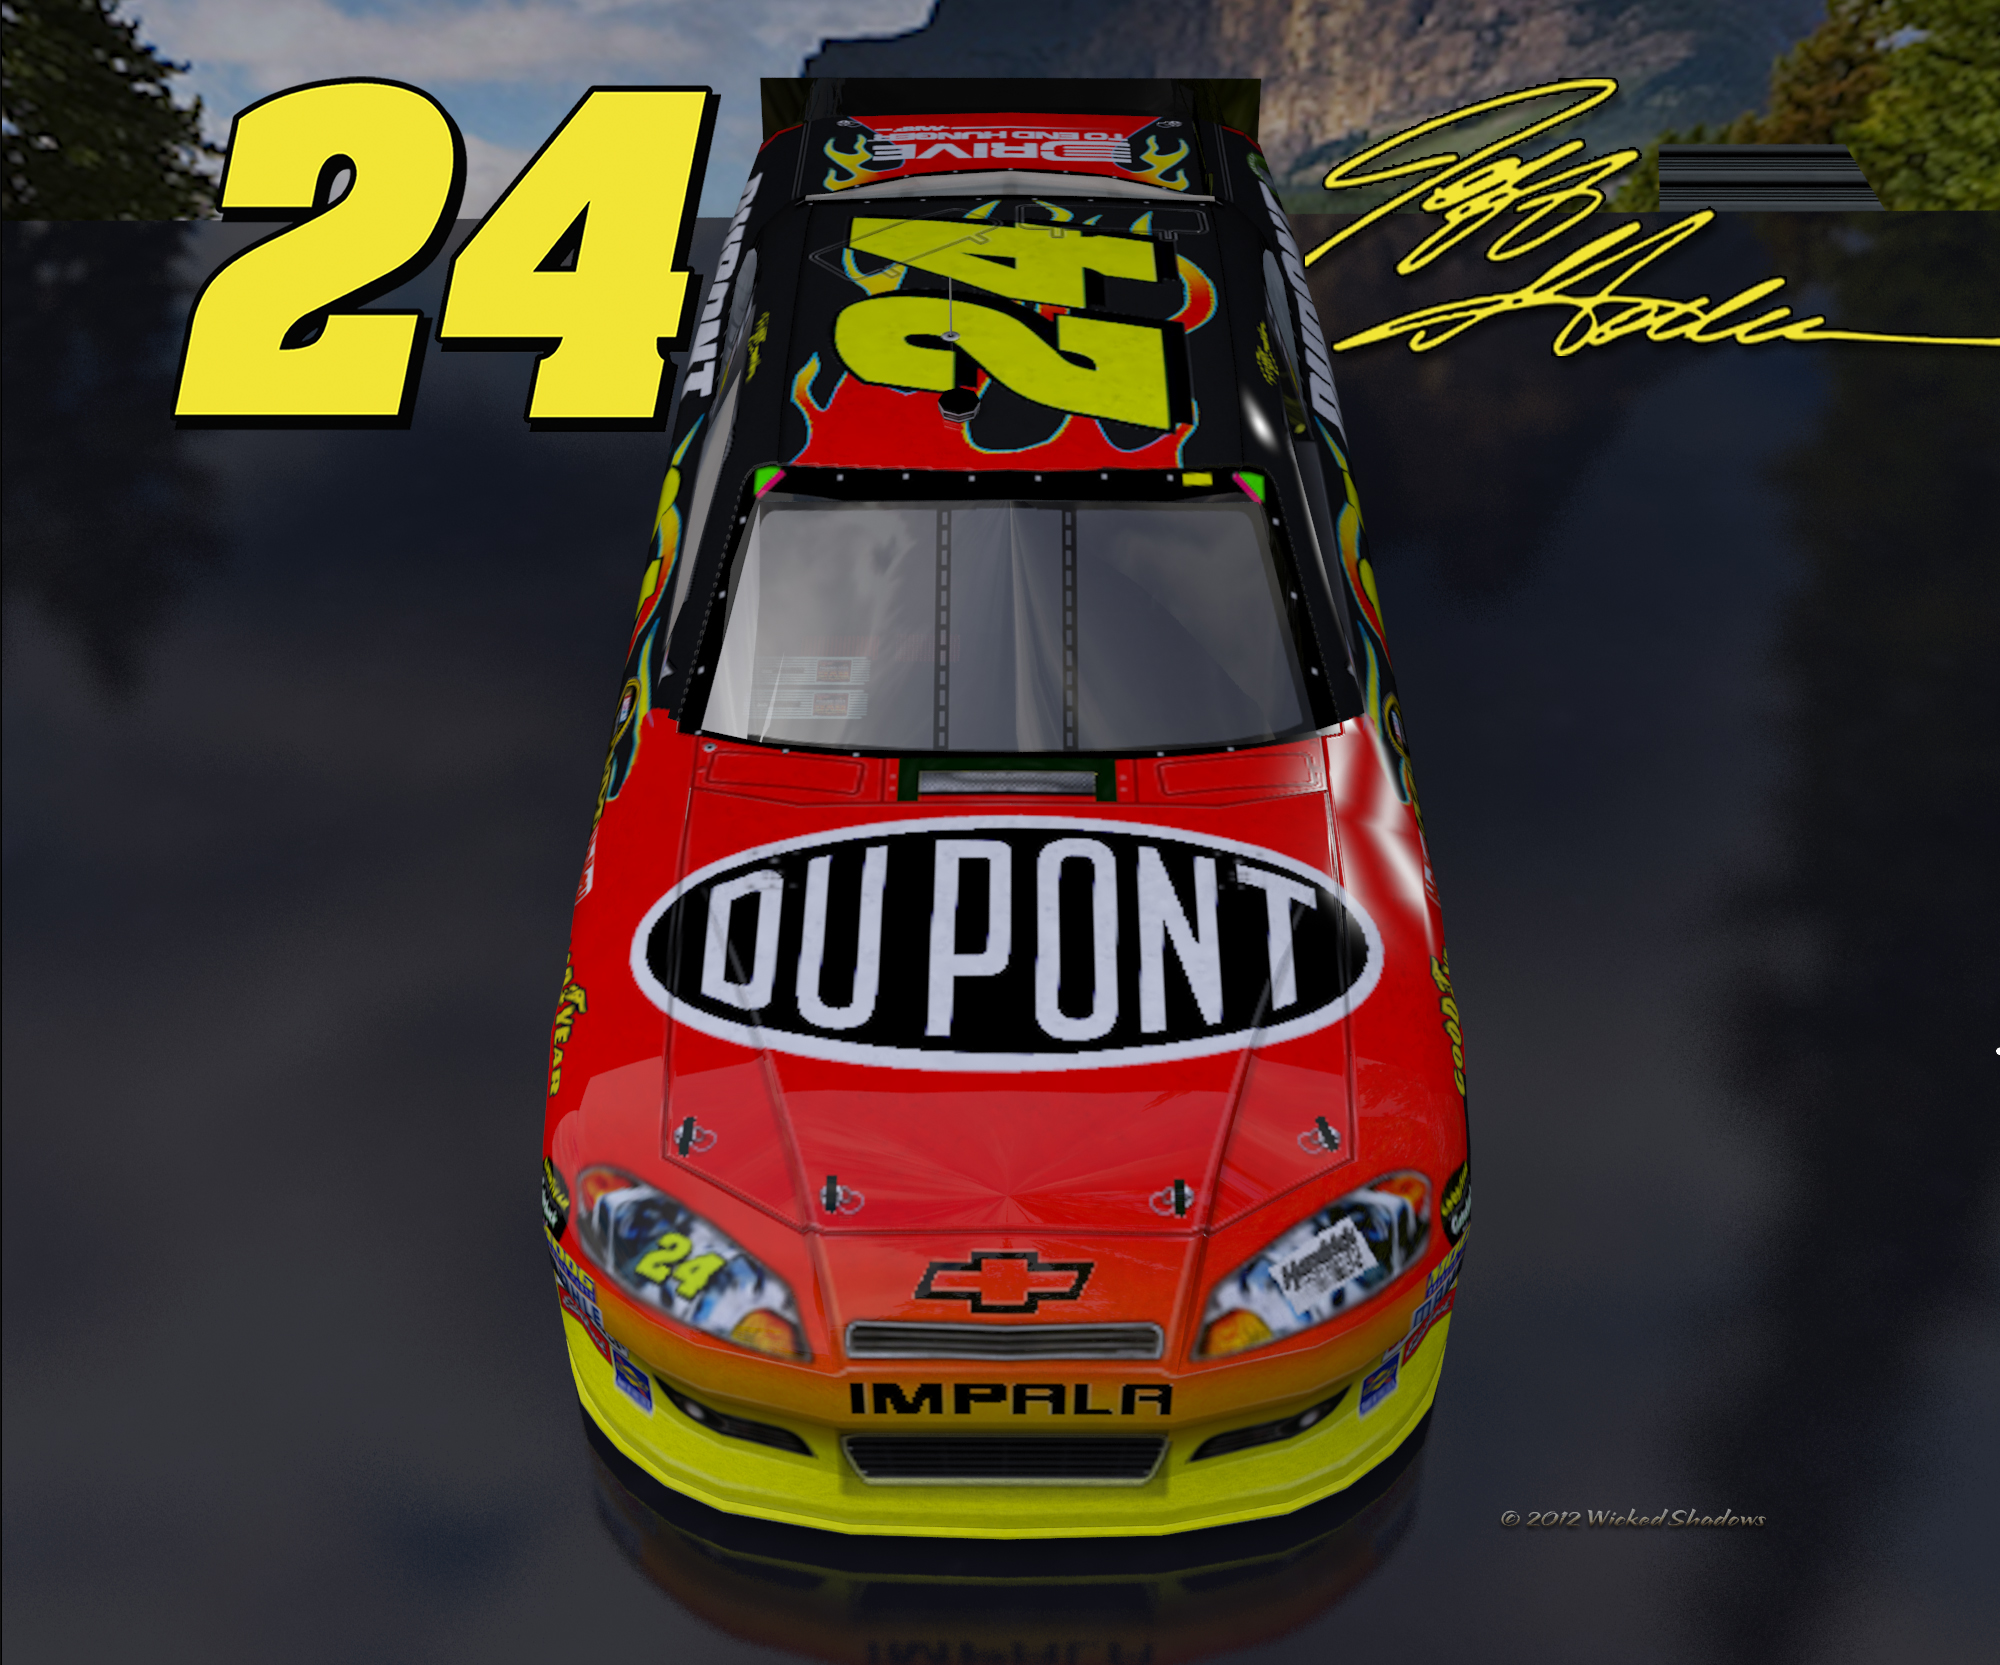 Wallpapers By Wicked Shadows Jeff Gordon Dupont Outdoor Version 2